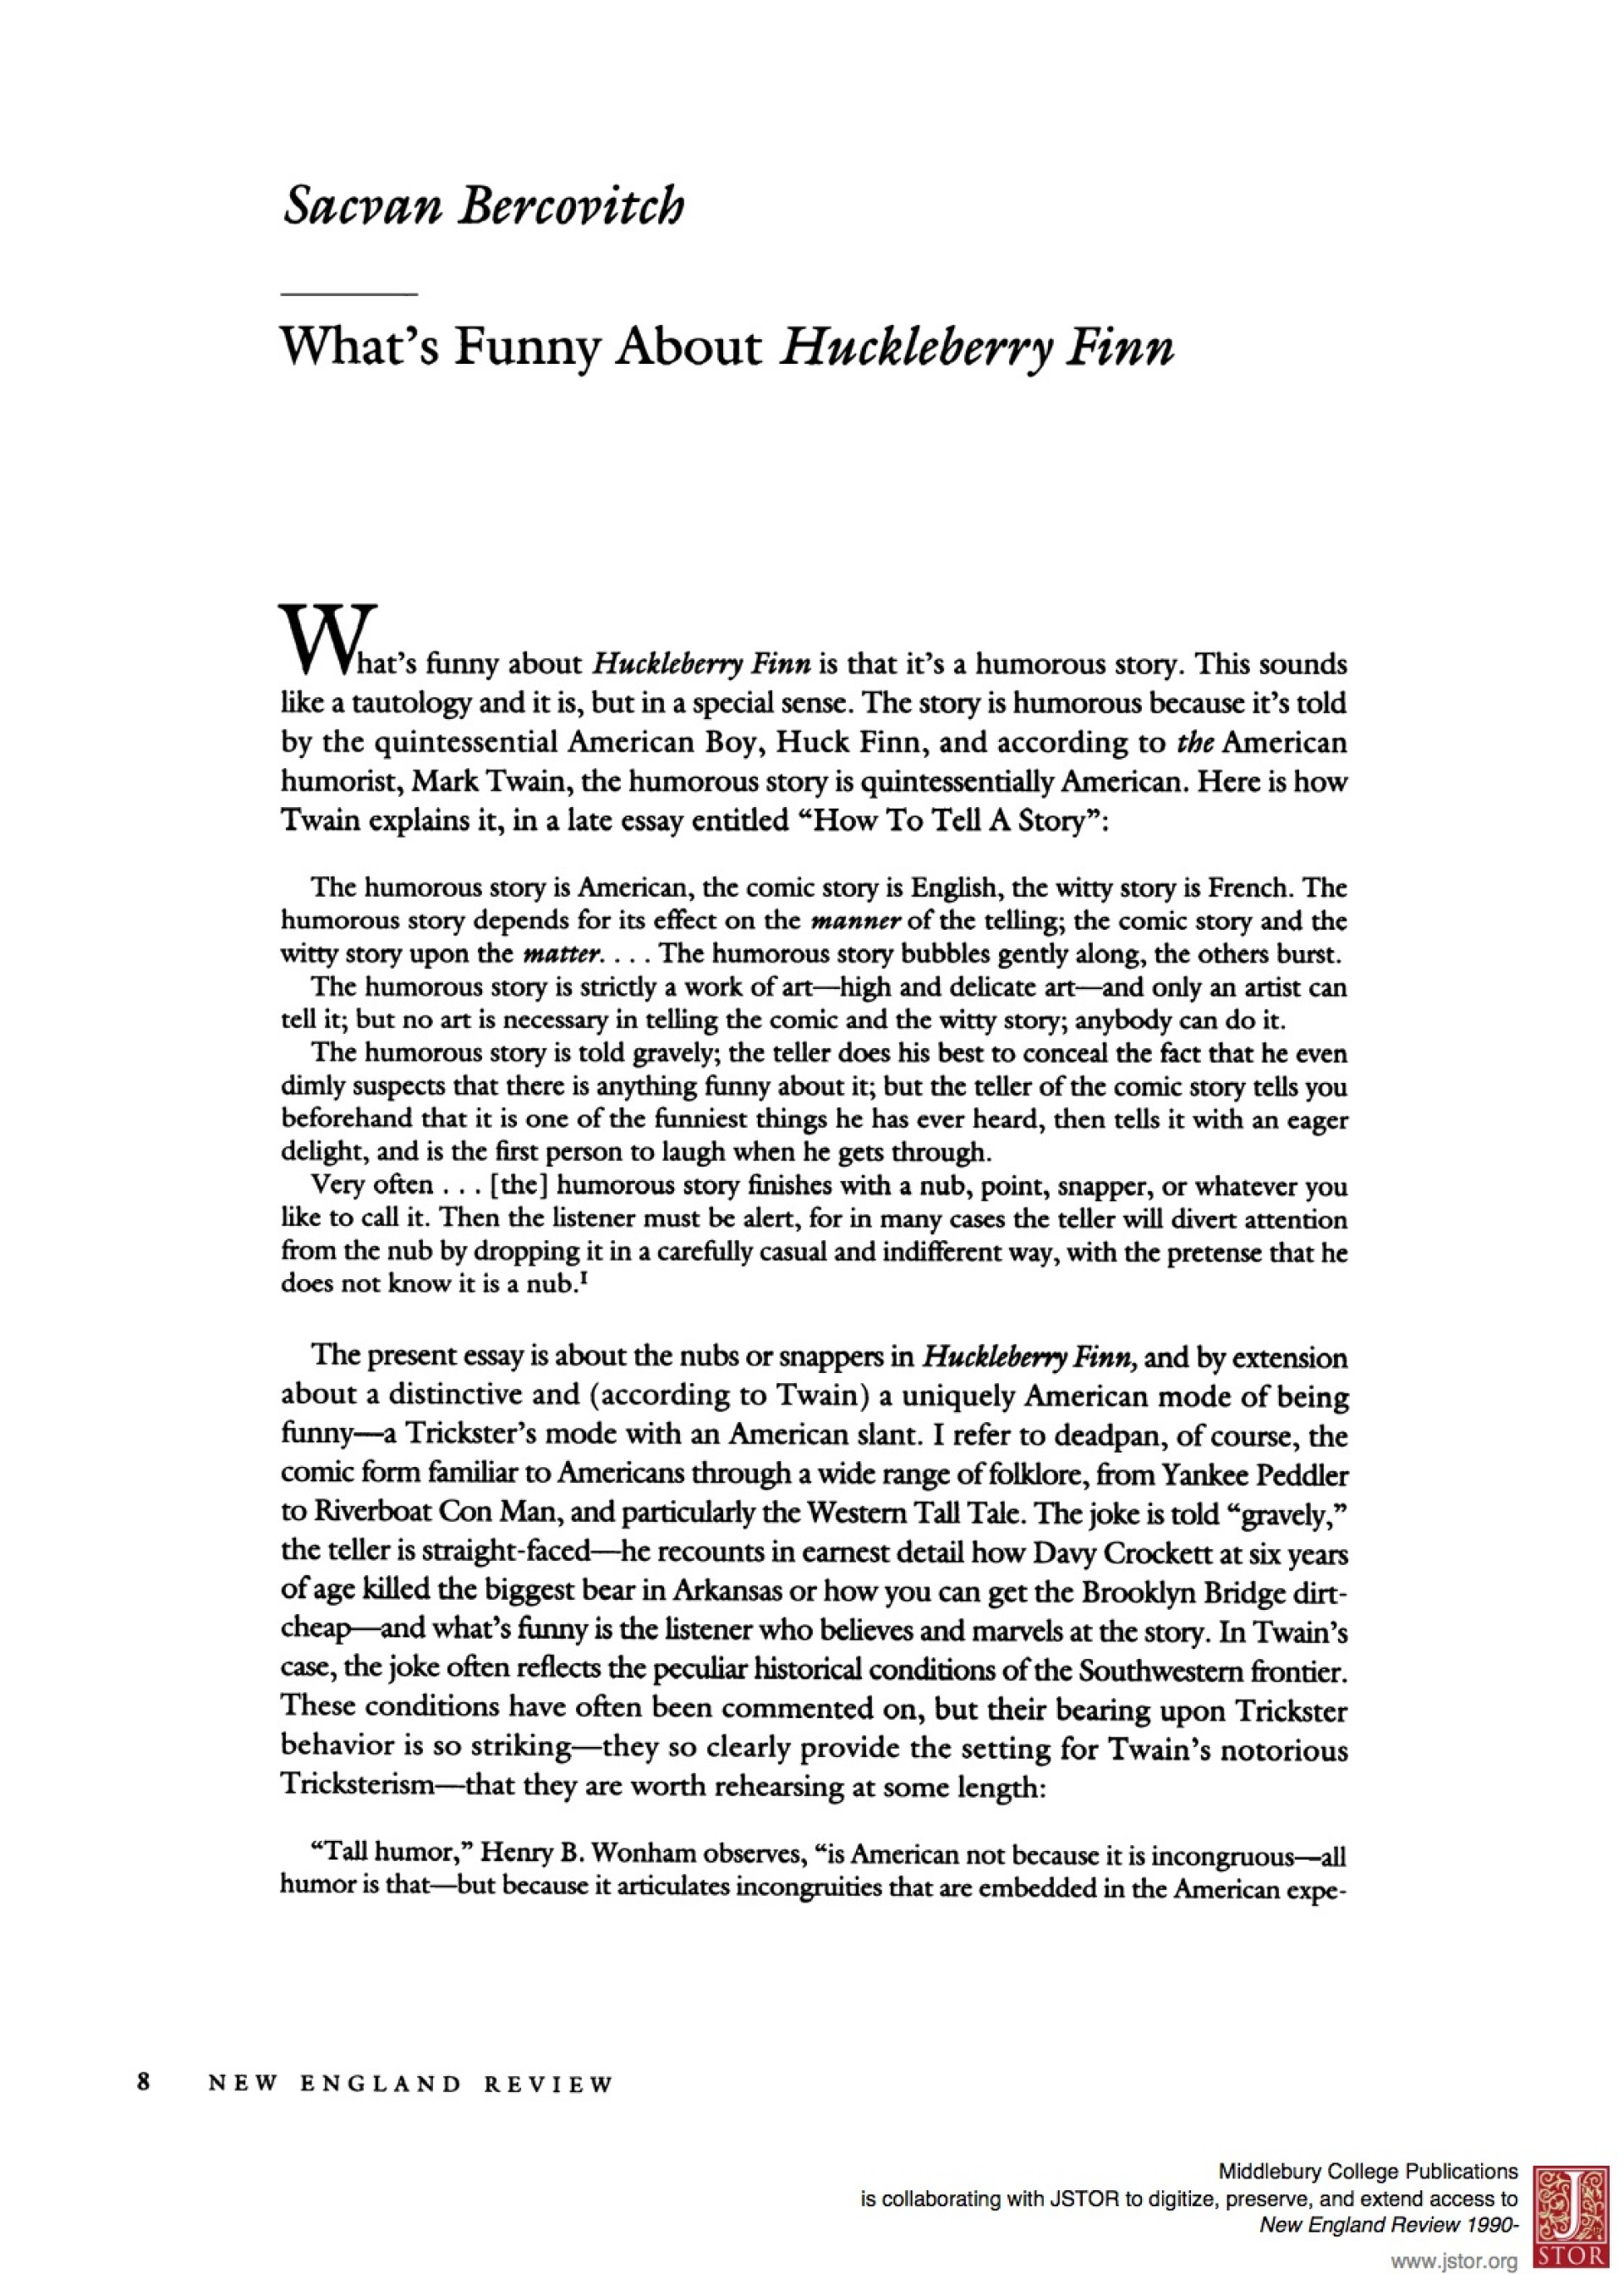 001 Essay Example Whatsfunnyabouthuckfinn Huck Awesome Finn Huckleberry Argumentative Topics The Adventures Of Prompts 1920